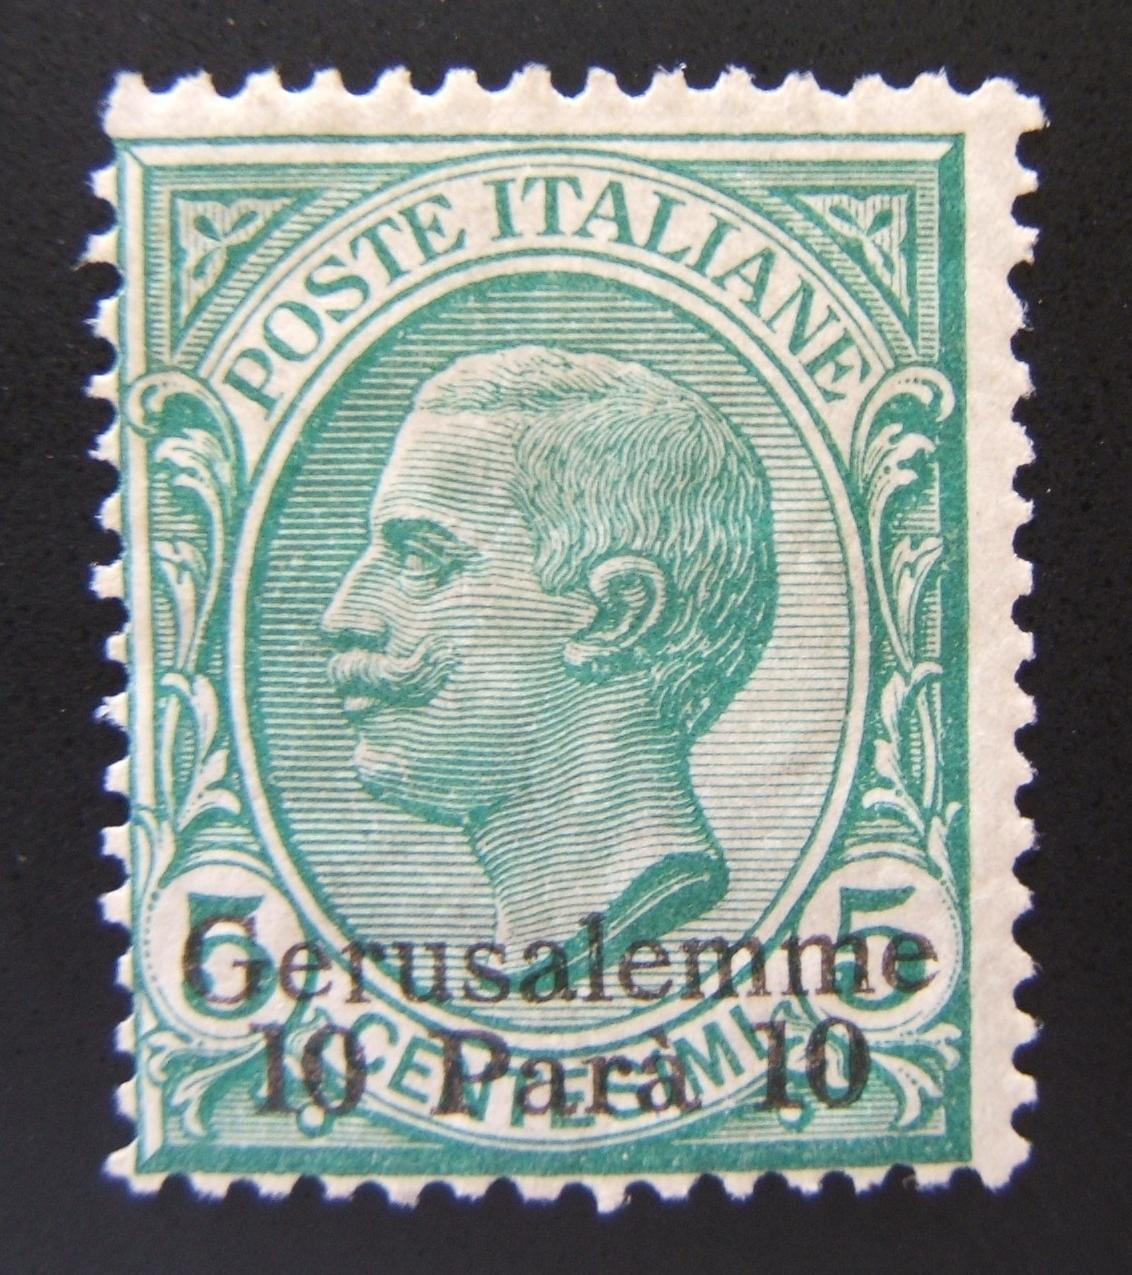 Italian Post in Holyland 1909 Gerusalemme ovpt: 10 Para/5c (Ba 31), mint-hinged